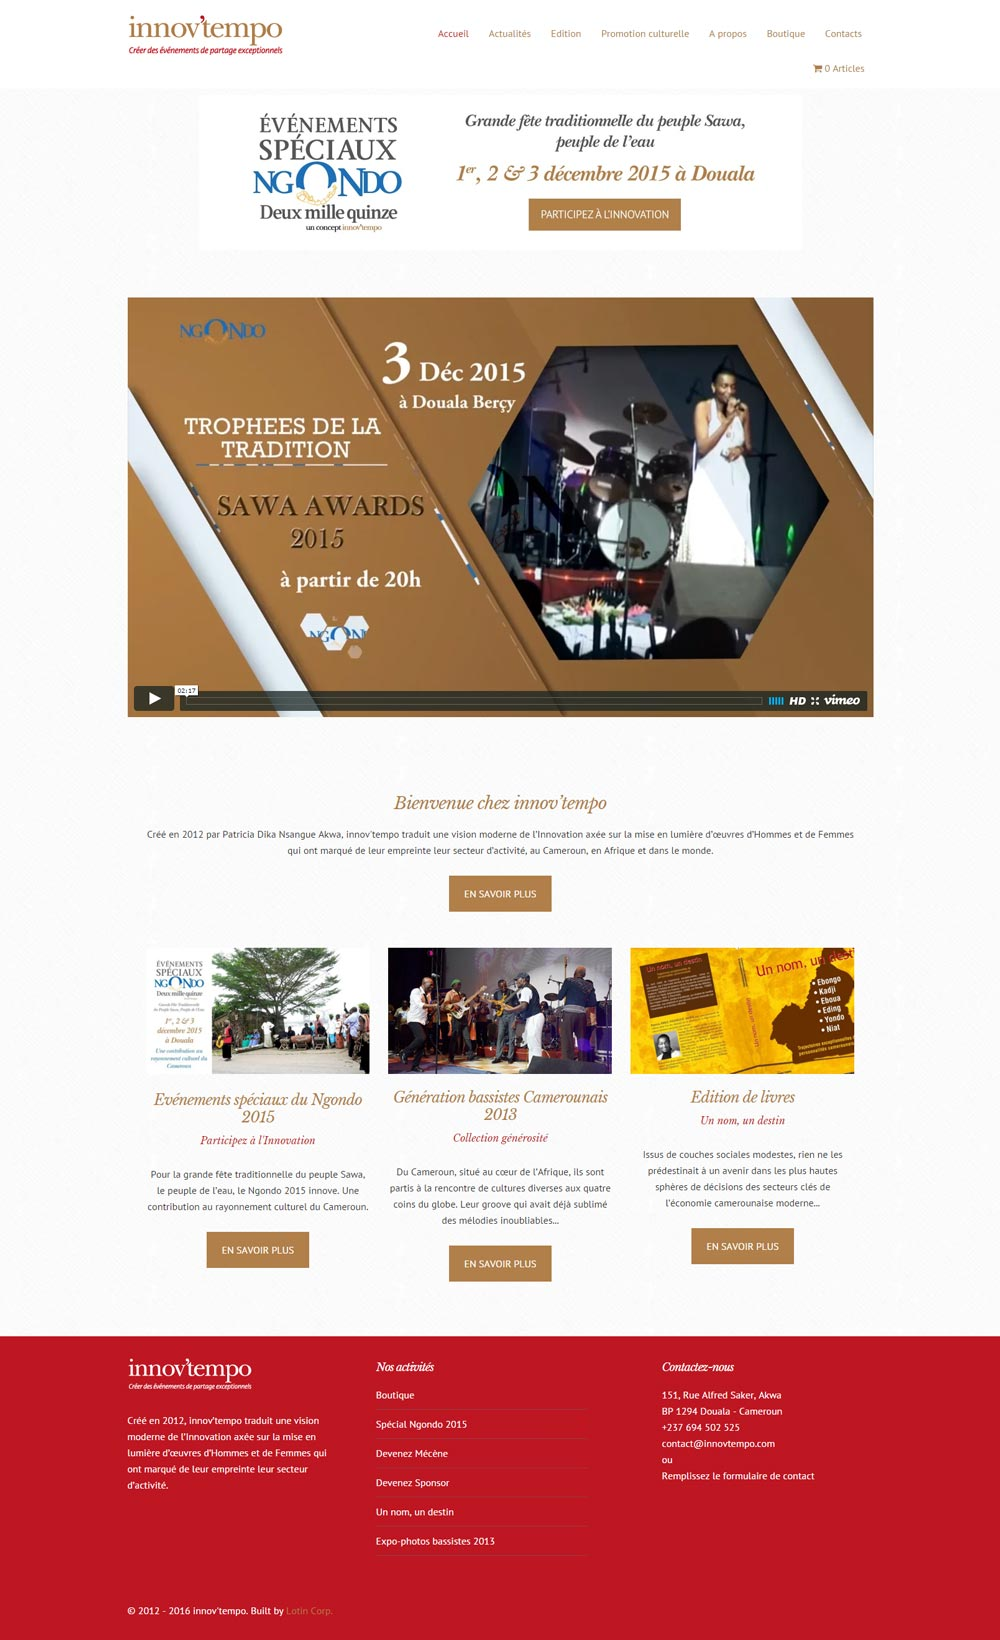 website-innovtempo-home-page